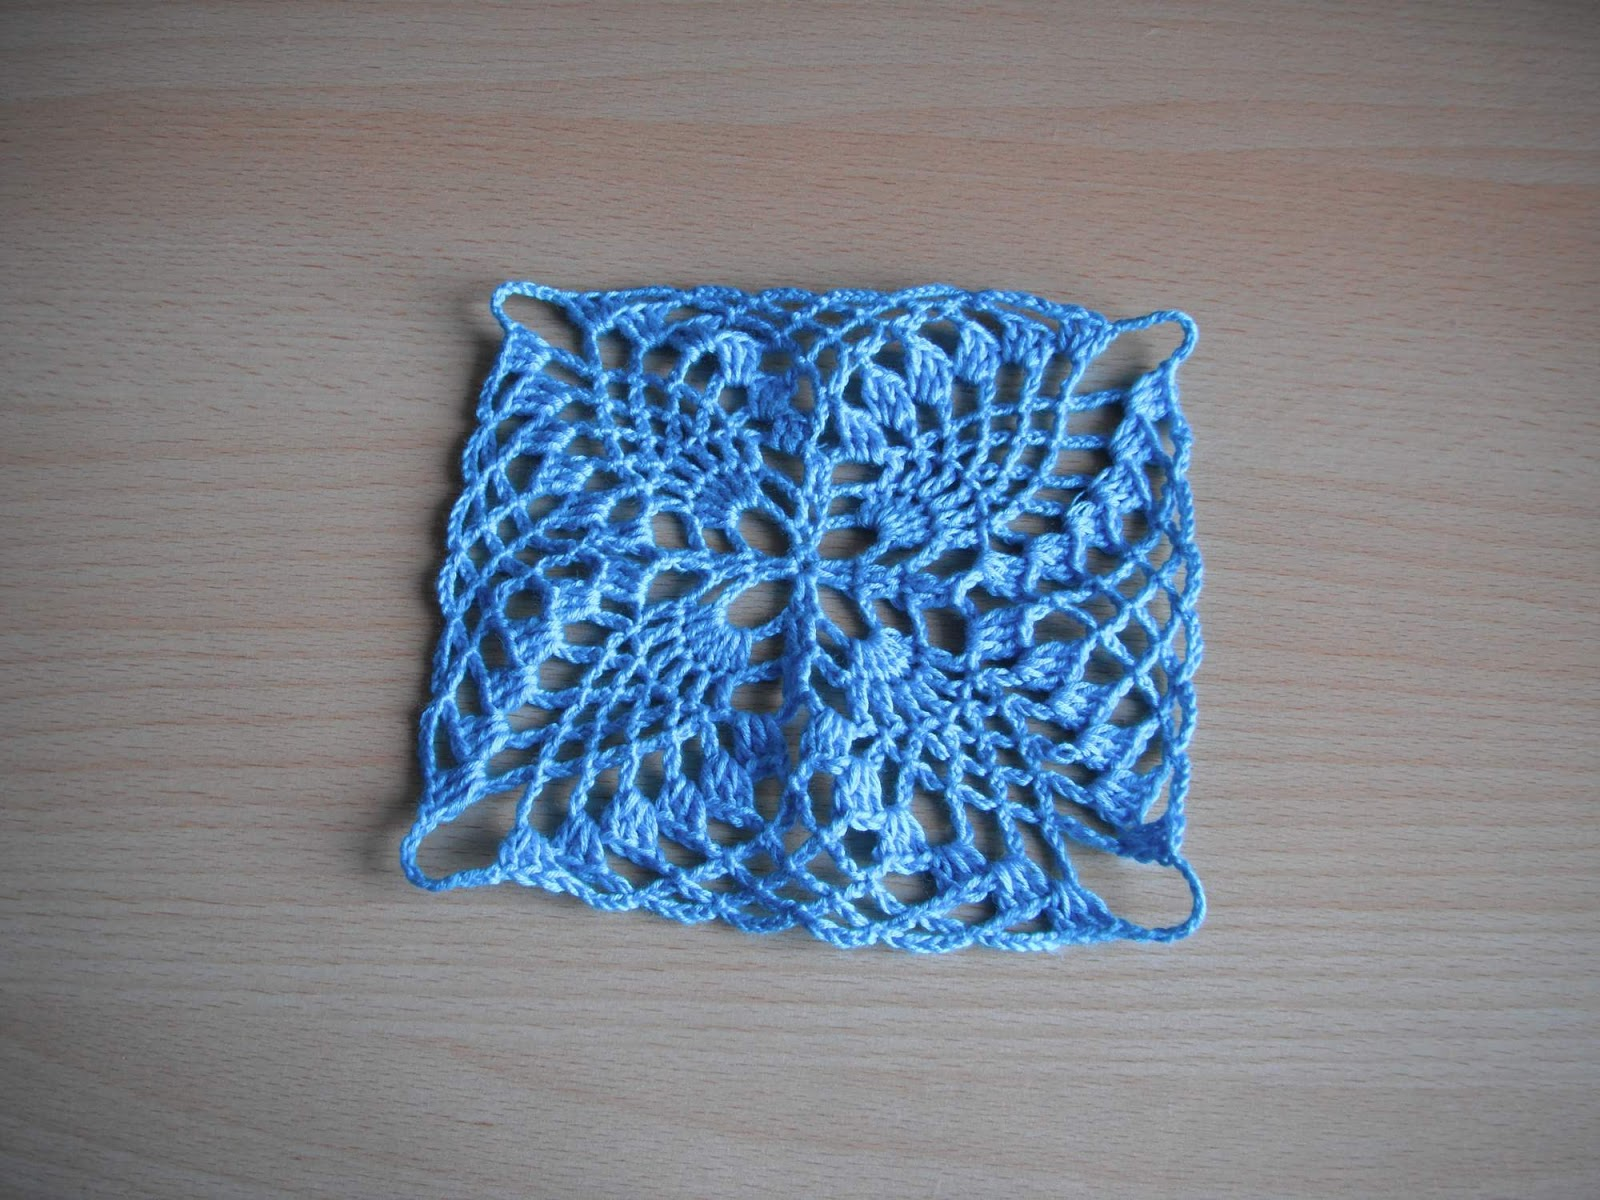 Crochet Patterns I Can Make And Sell : Free crochet patterns and video tutorials: How to crochet ...